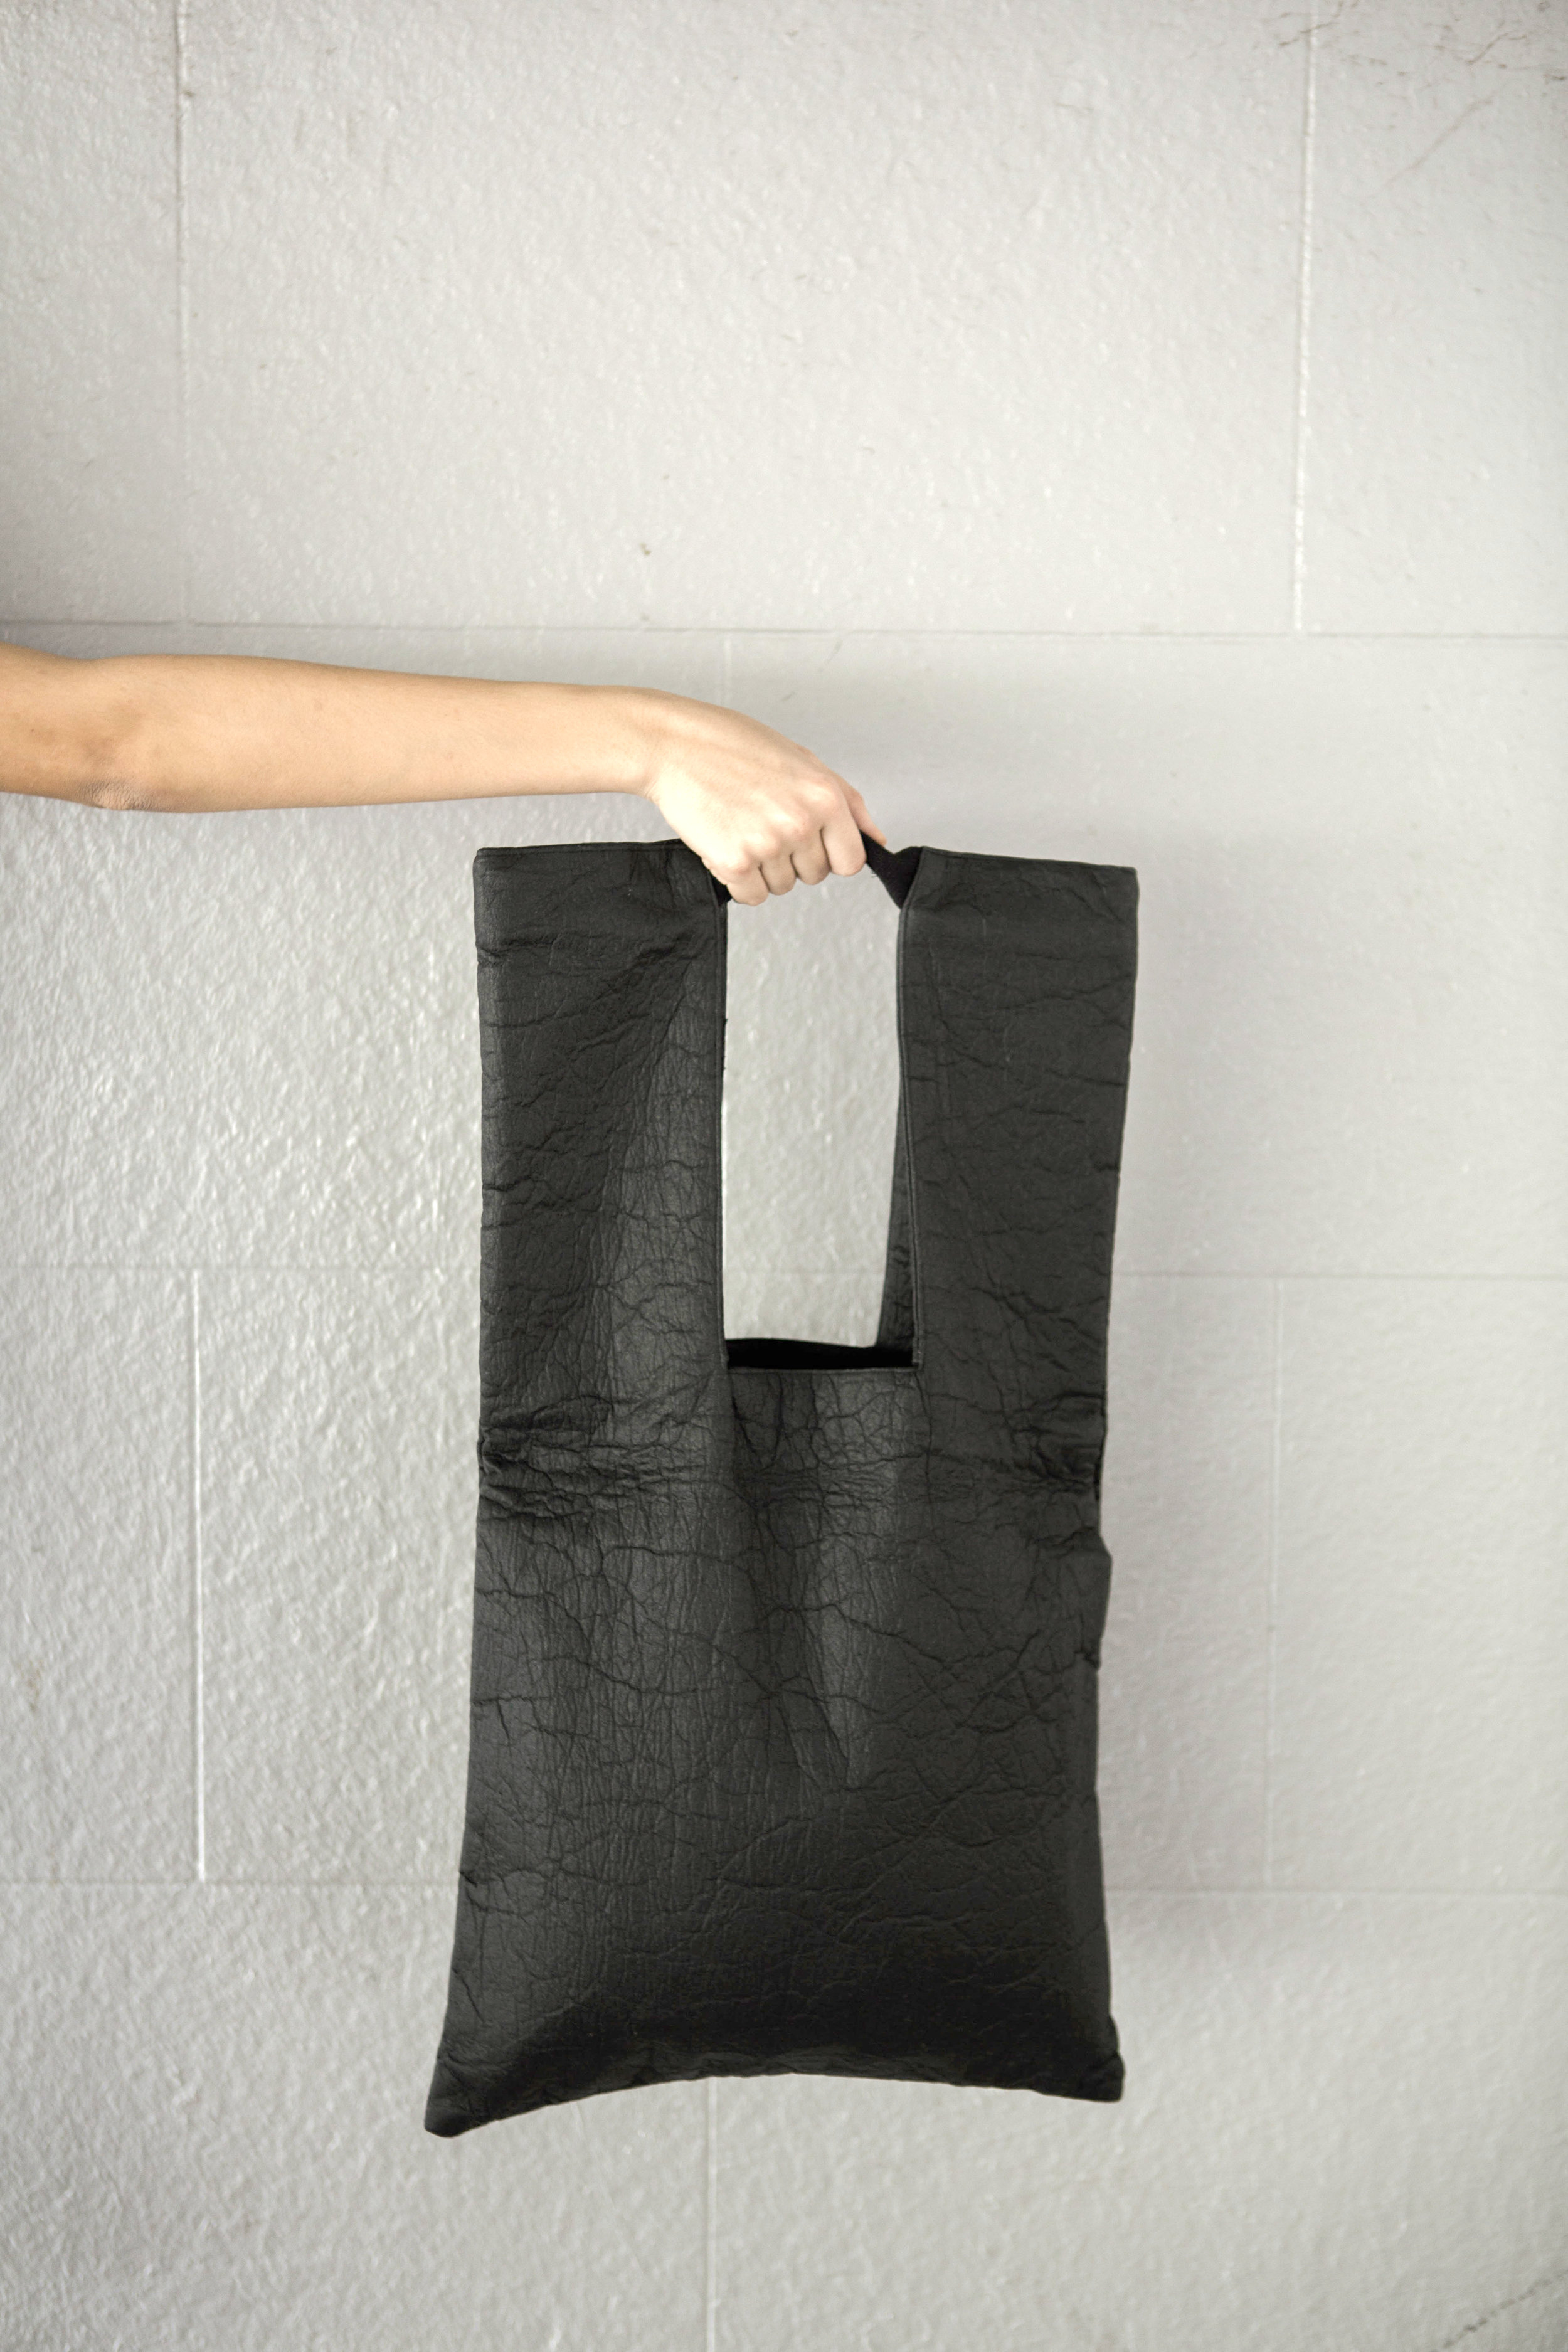 Piñatex U Tote Bag in Charcoal